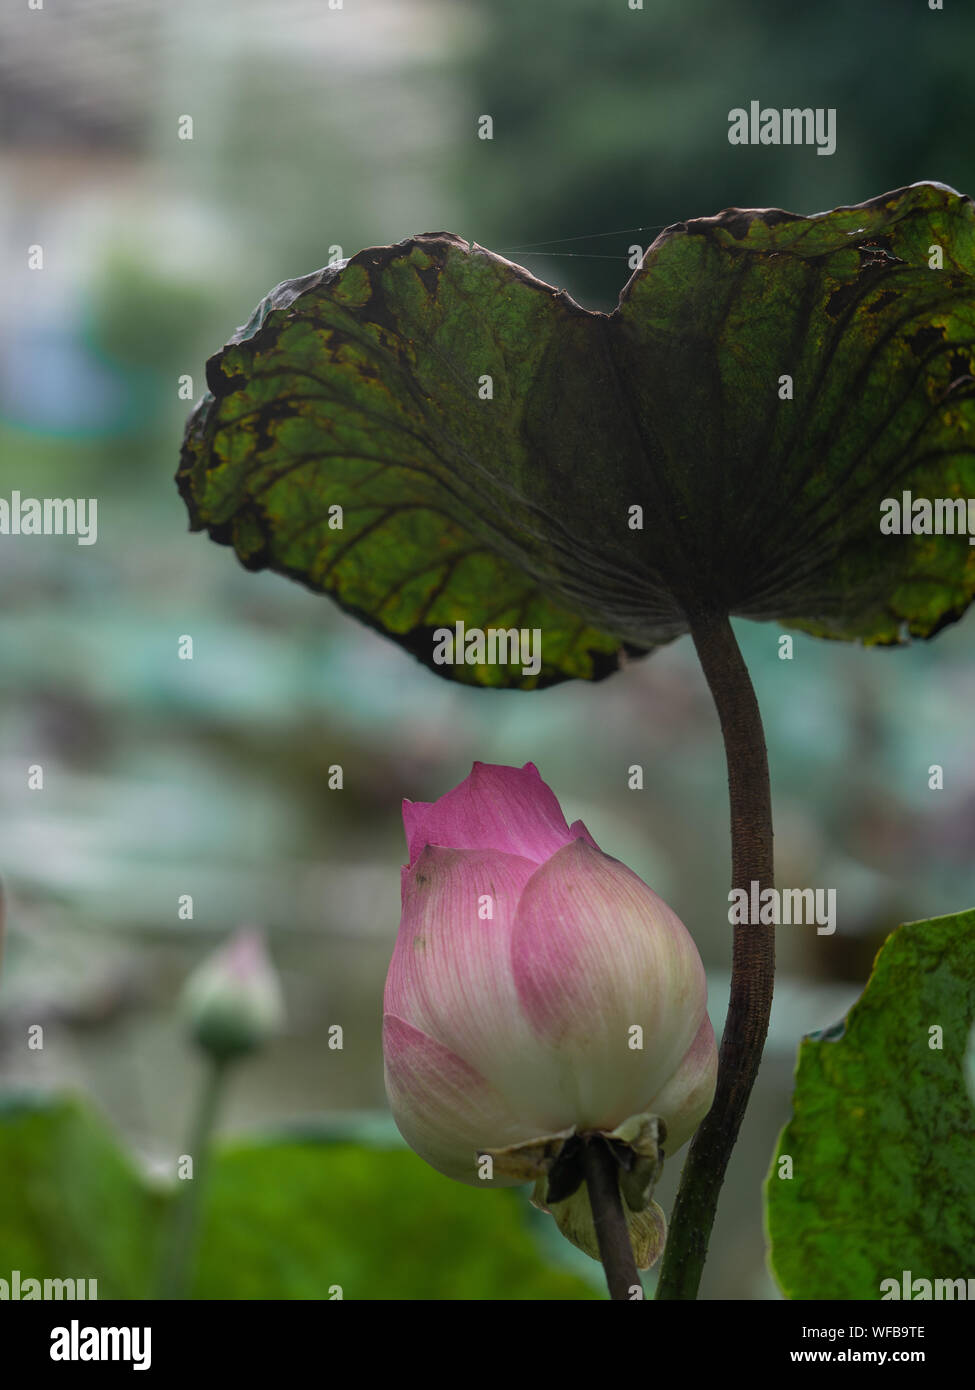 pink lotus flower in the pond on blurred background, Reflects water sunset, Religious or spa background Stock Photo